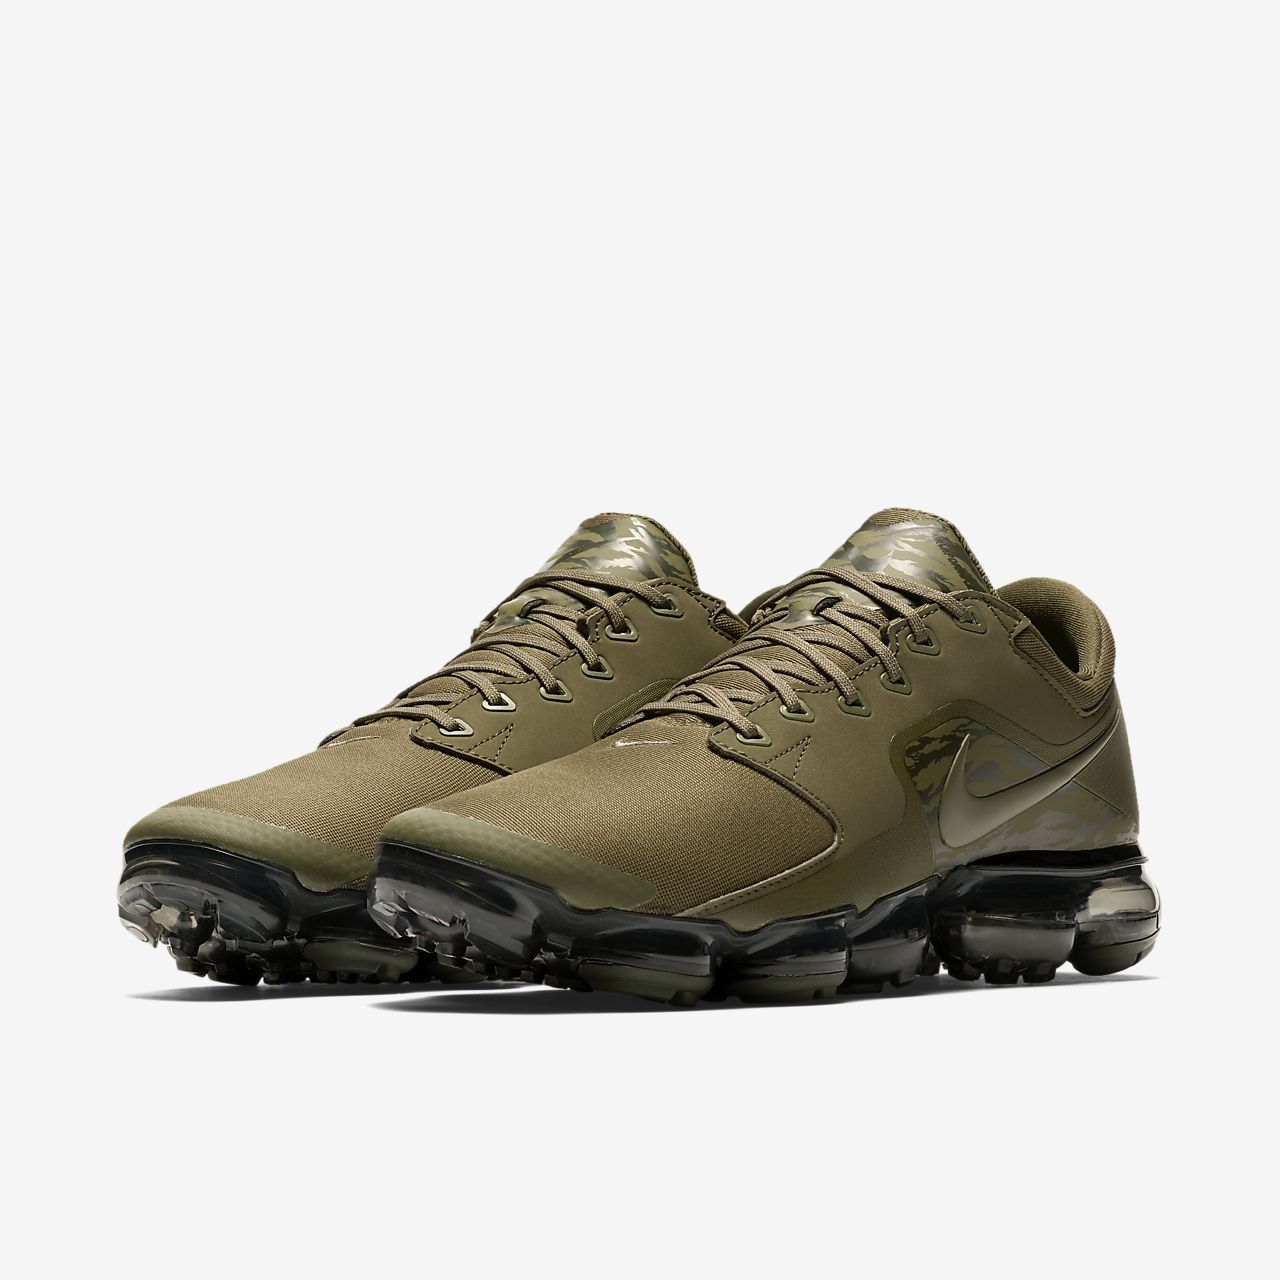 uk availability 62307 abea2 Low Resolution Nike Air VaporMax Mens Running Shoe Nike Air VaporMax Mens  Running Shoe